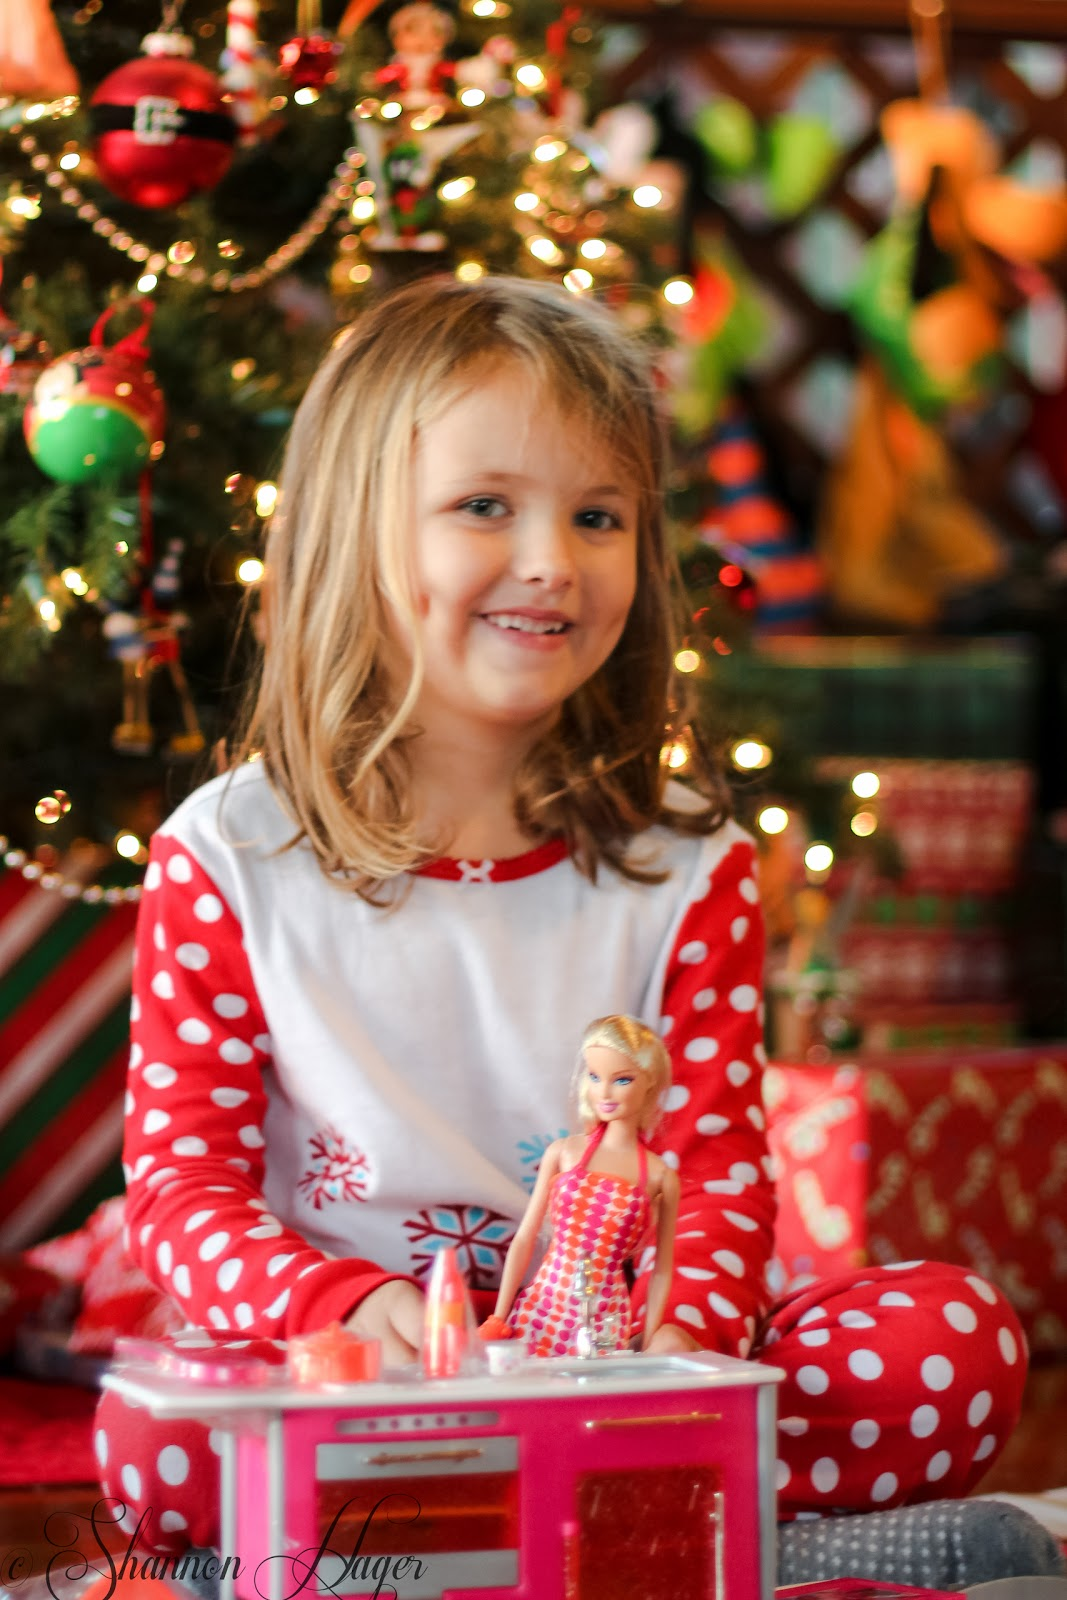 Enjoying Life With 4 Kids: Opening Presents on Christmas